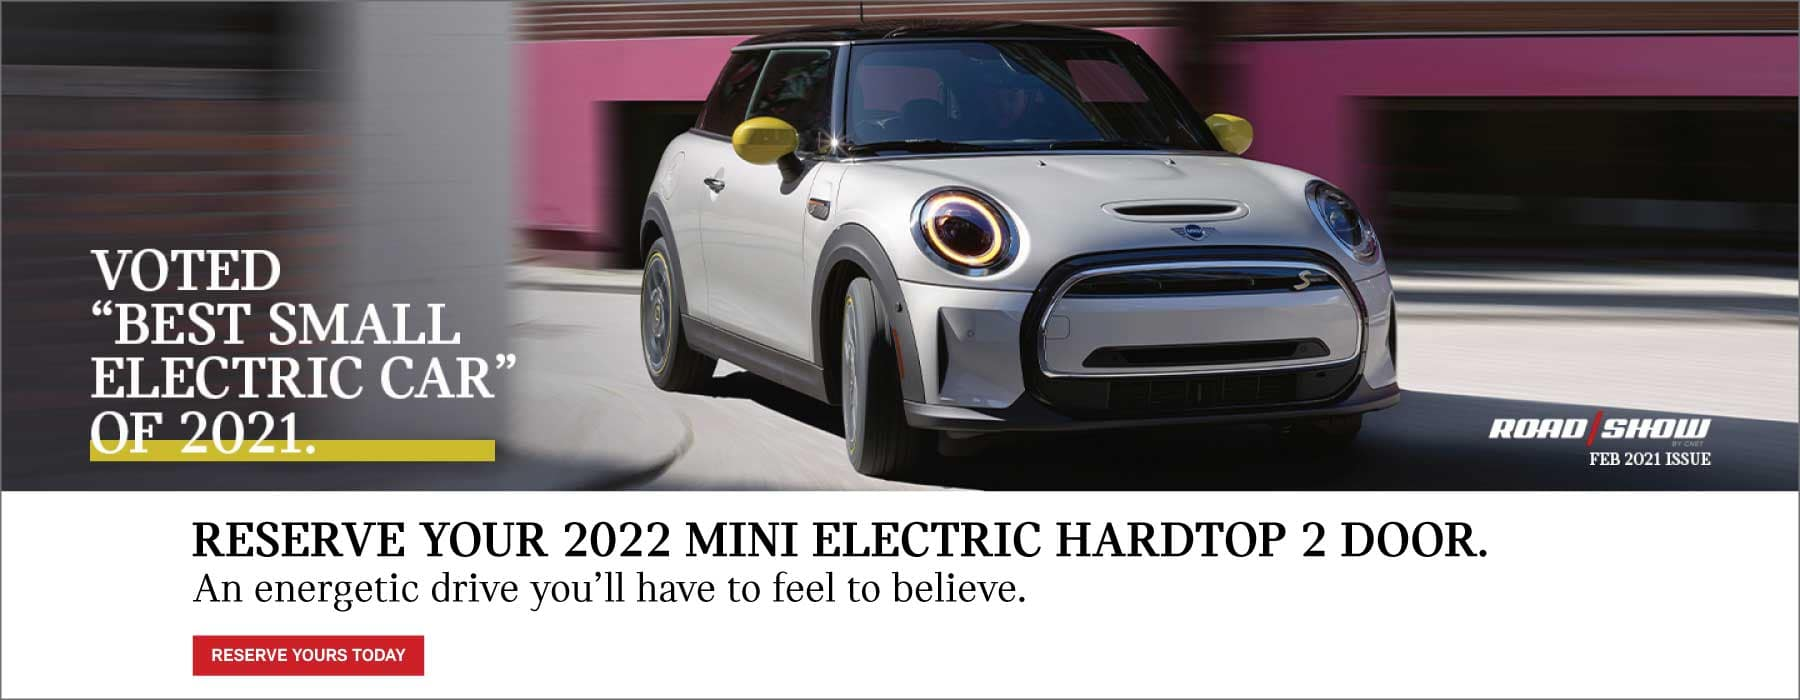 Reserve your 2022 MINI Electric Hardtop 2 Door. An energetic drive you'll have to feel to believe.